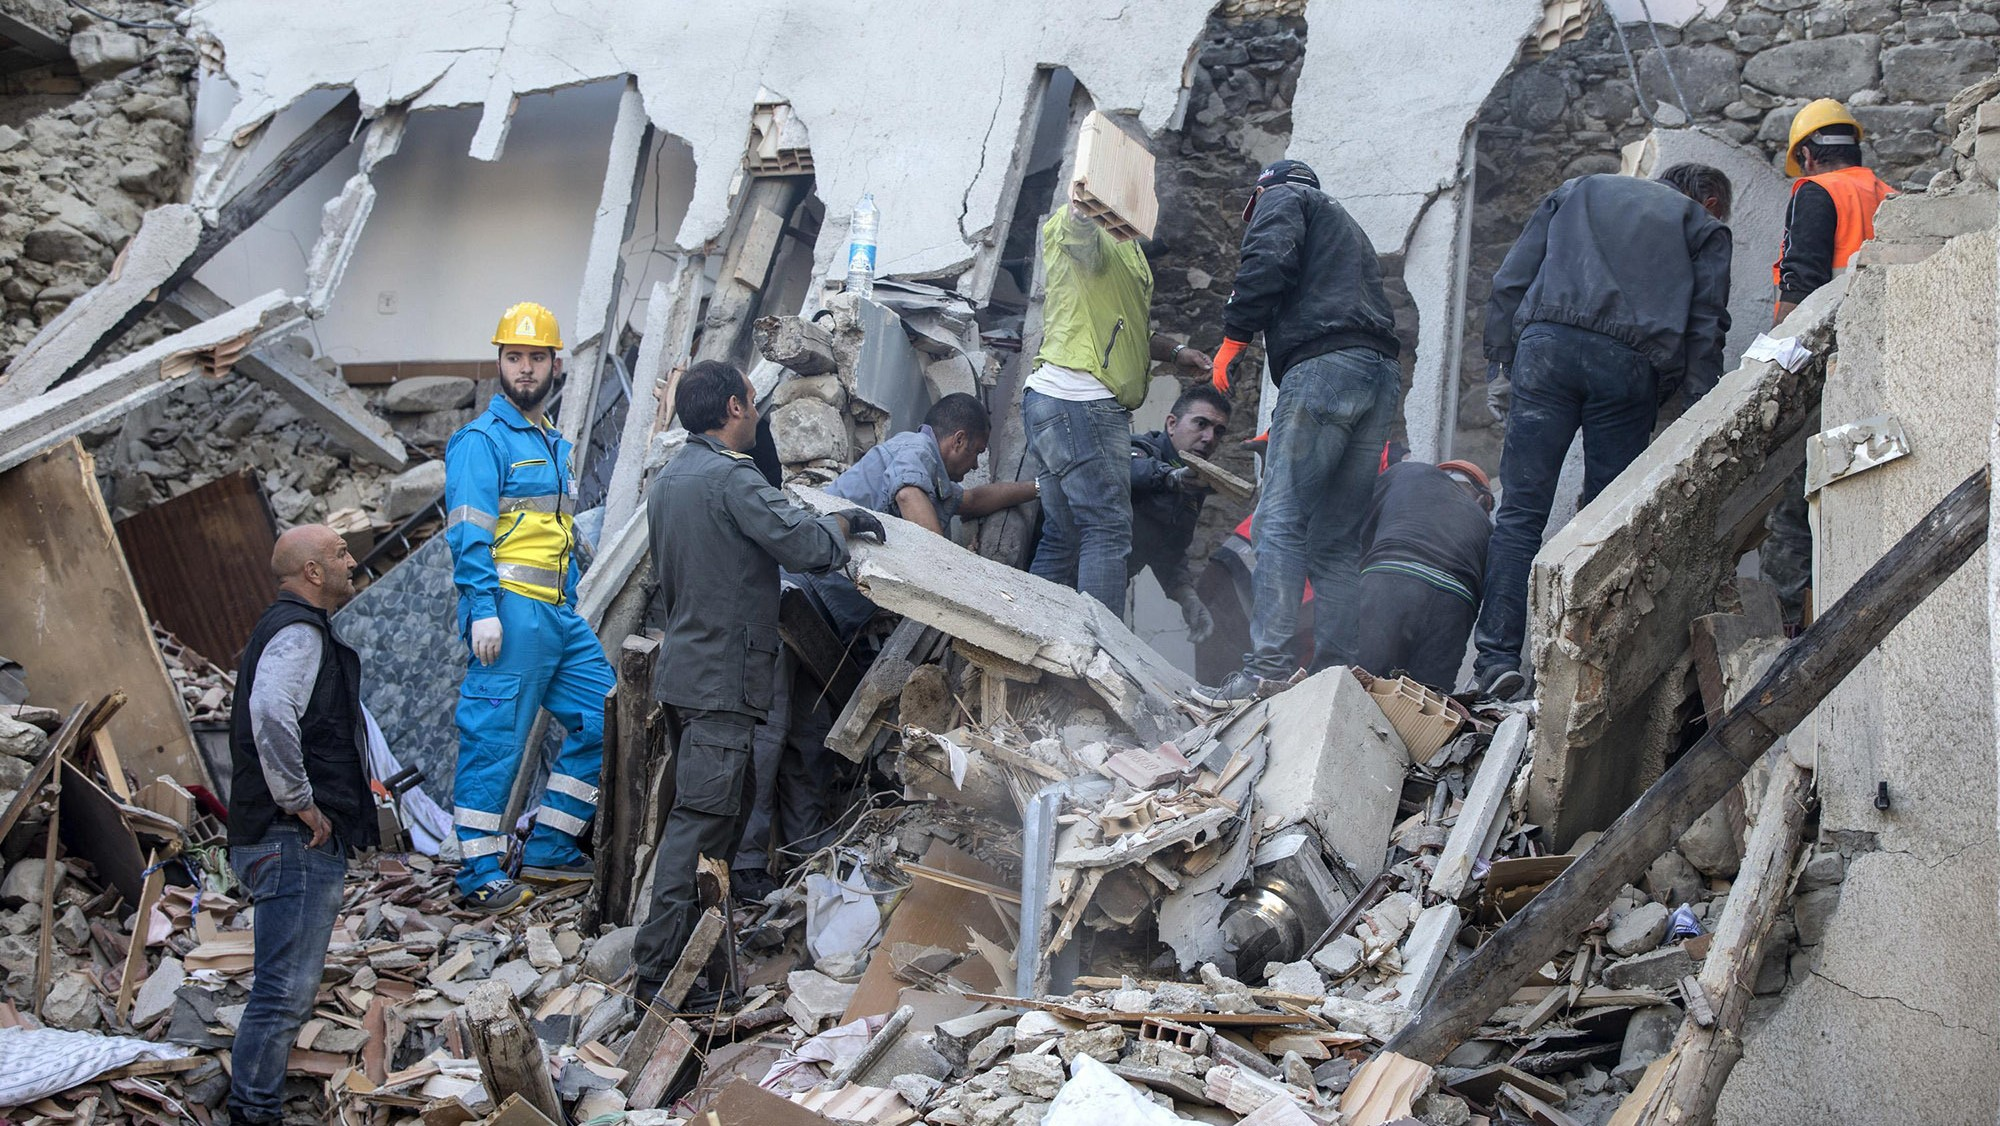 Earthquake flattens towns near Rome, killing dozens